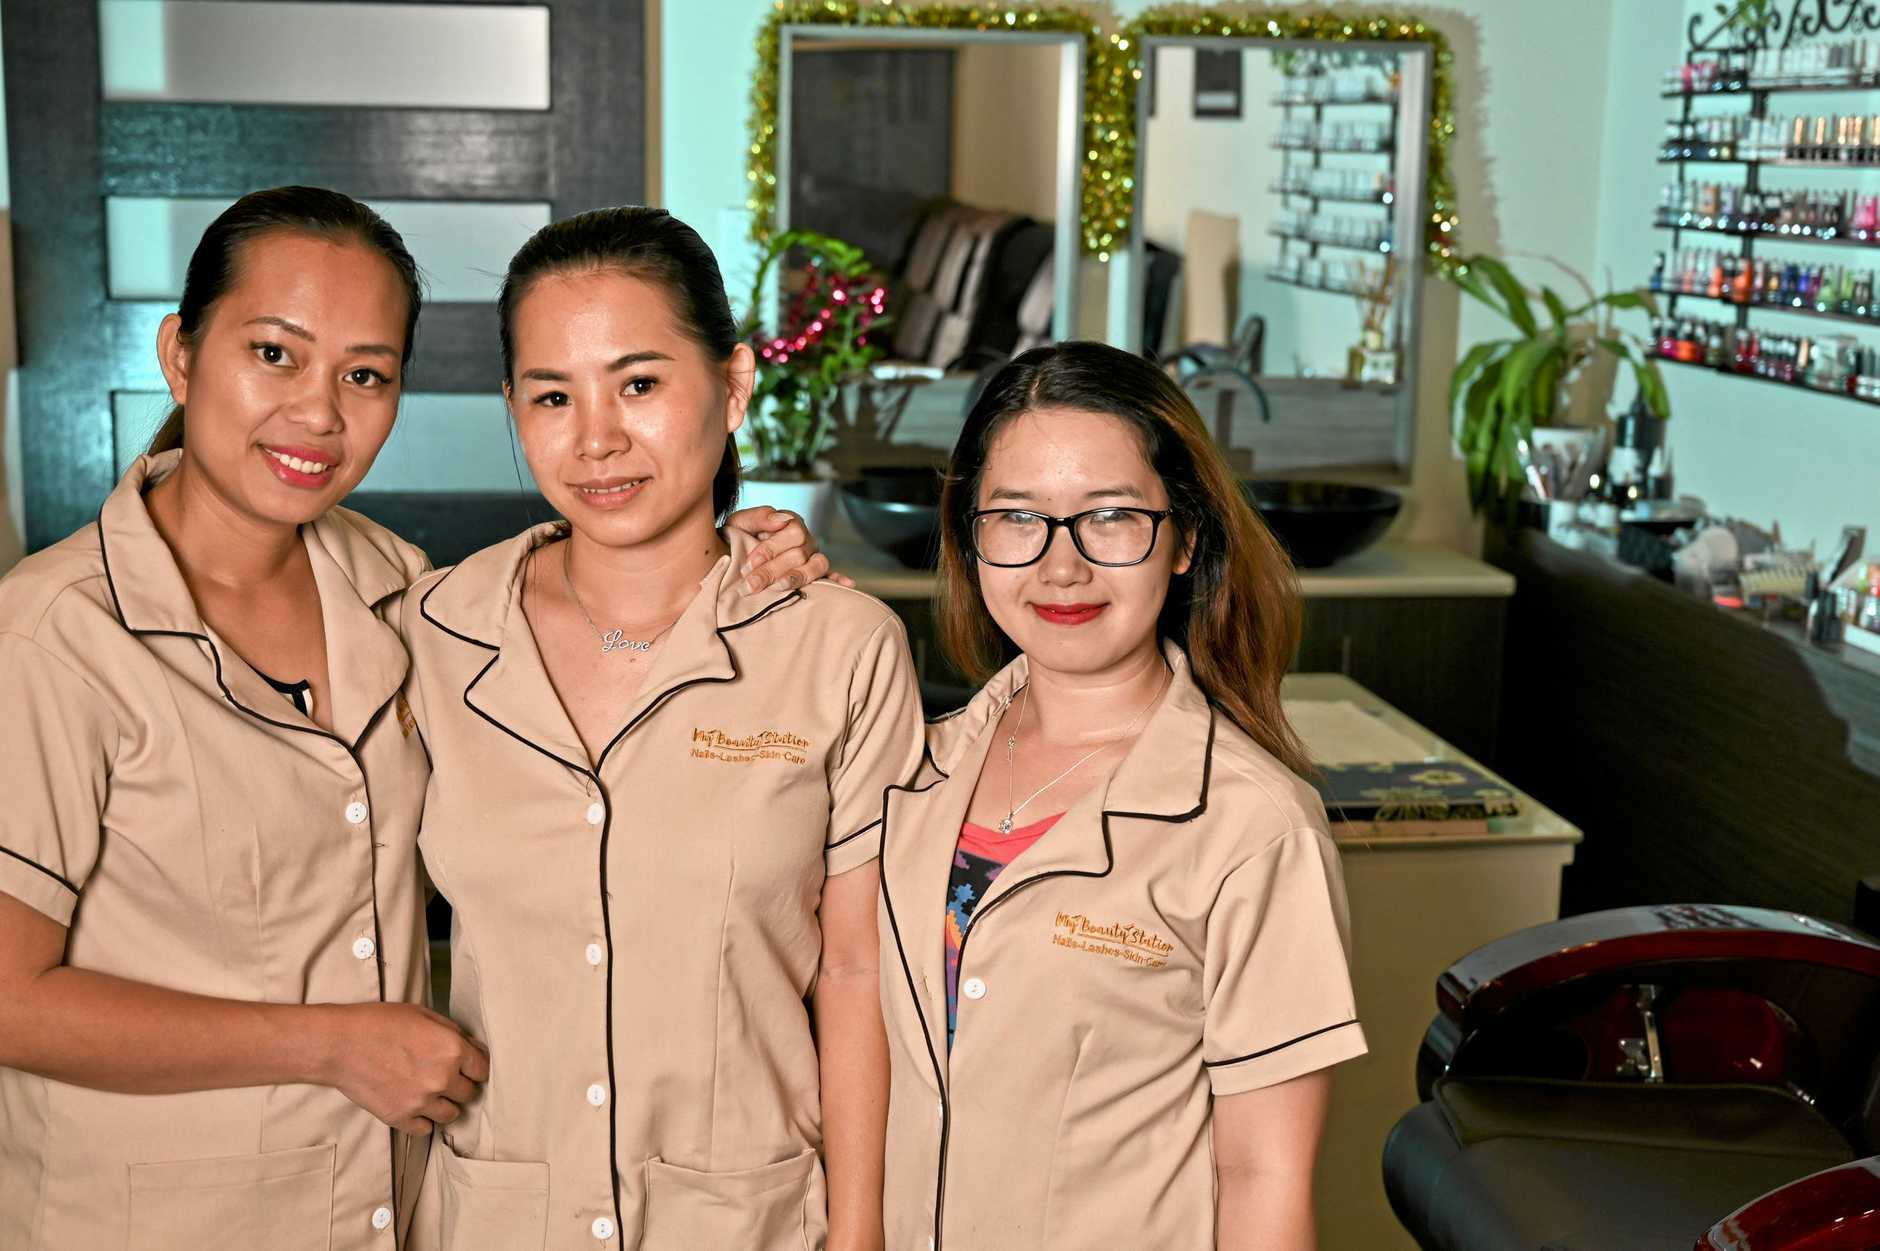 BUSINESS IS GOOD: Amy Pham, Thythy Nguyen and Quynh Kendall from My Beauty Station in Raceview. They plan on opening their second business in Karalee in May.